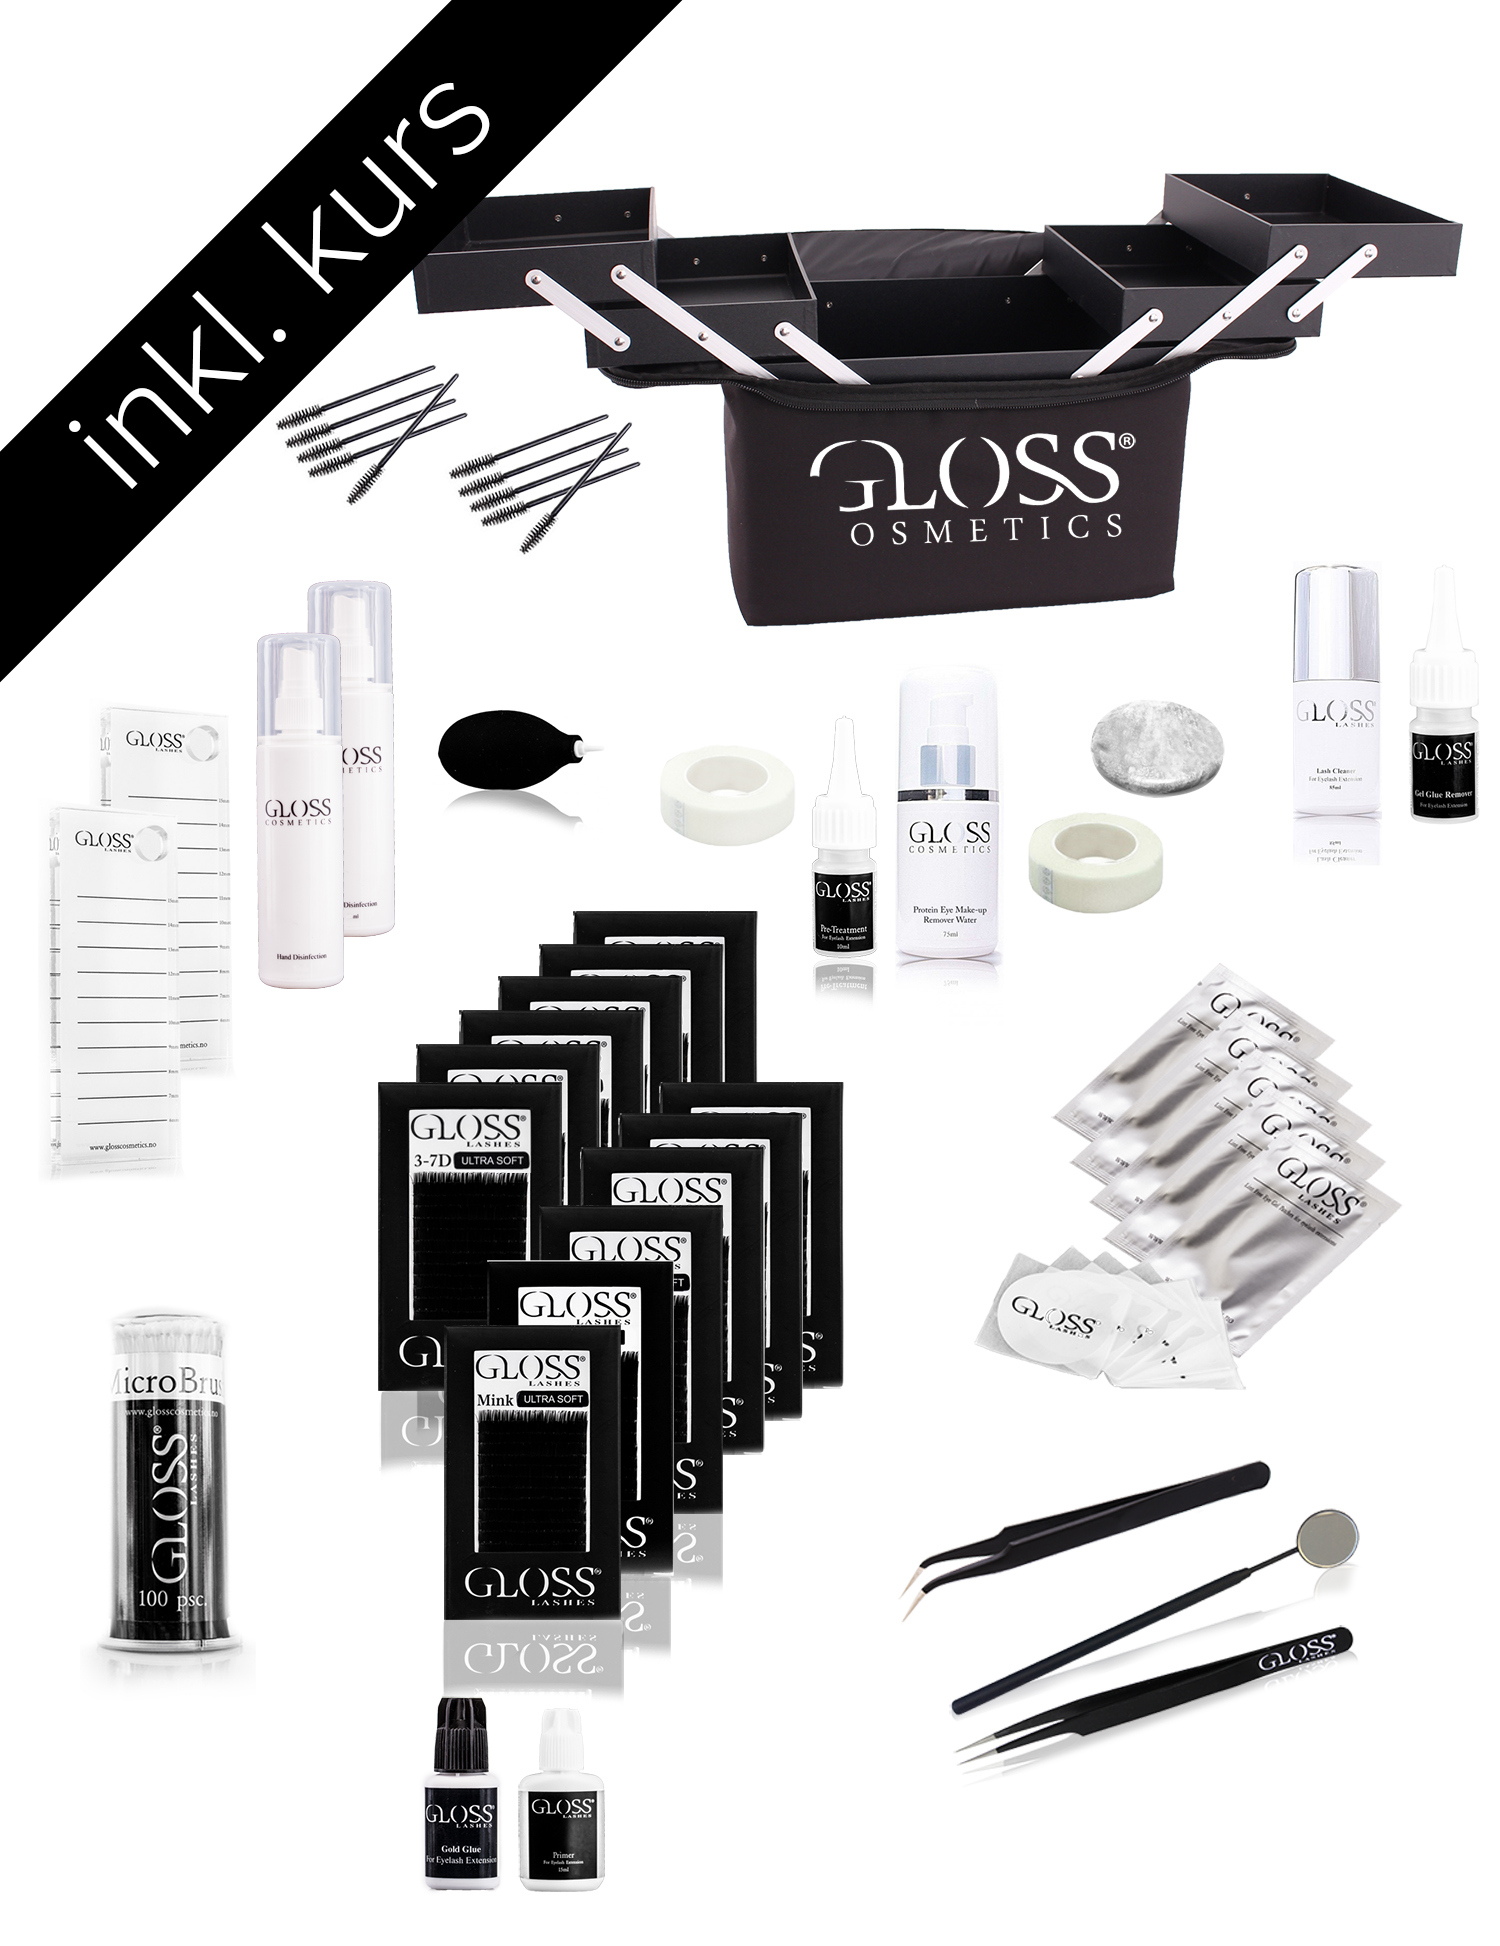 Kurs KOMBO Pakke Gloss Lashes 1:1 Klassisk & 3-7D Volume teknikk set BASIC